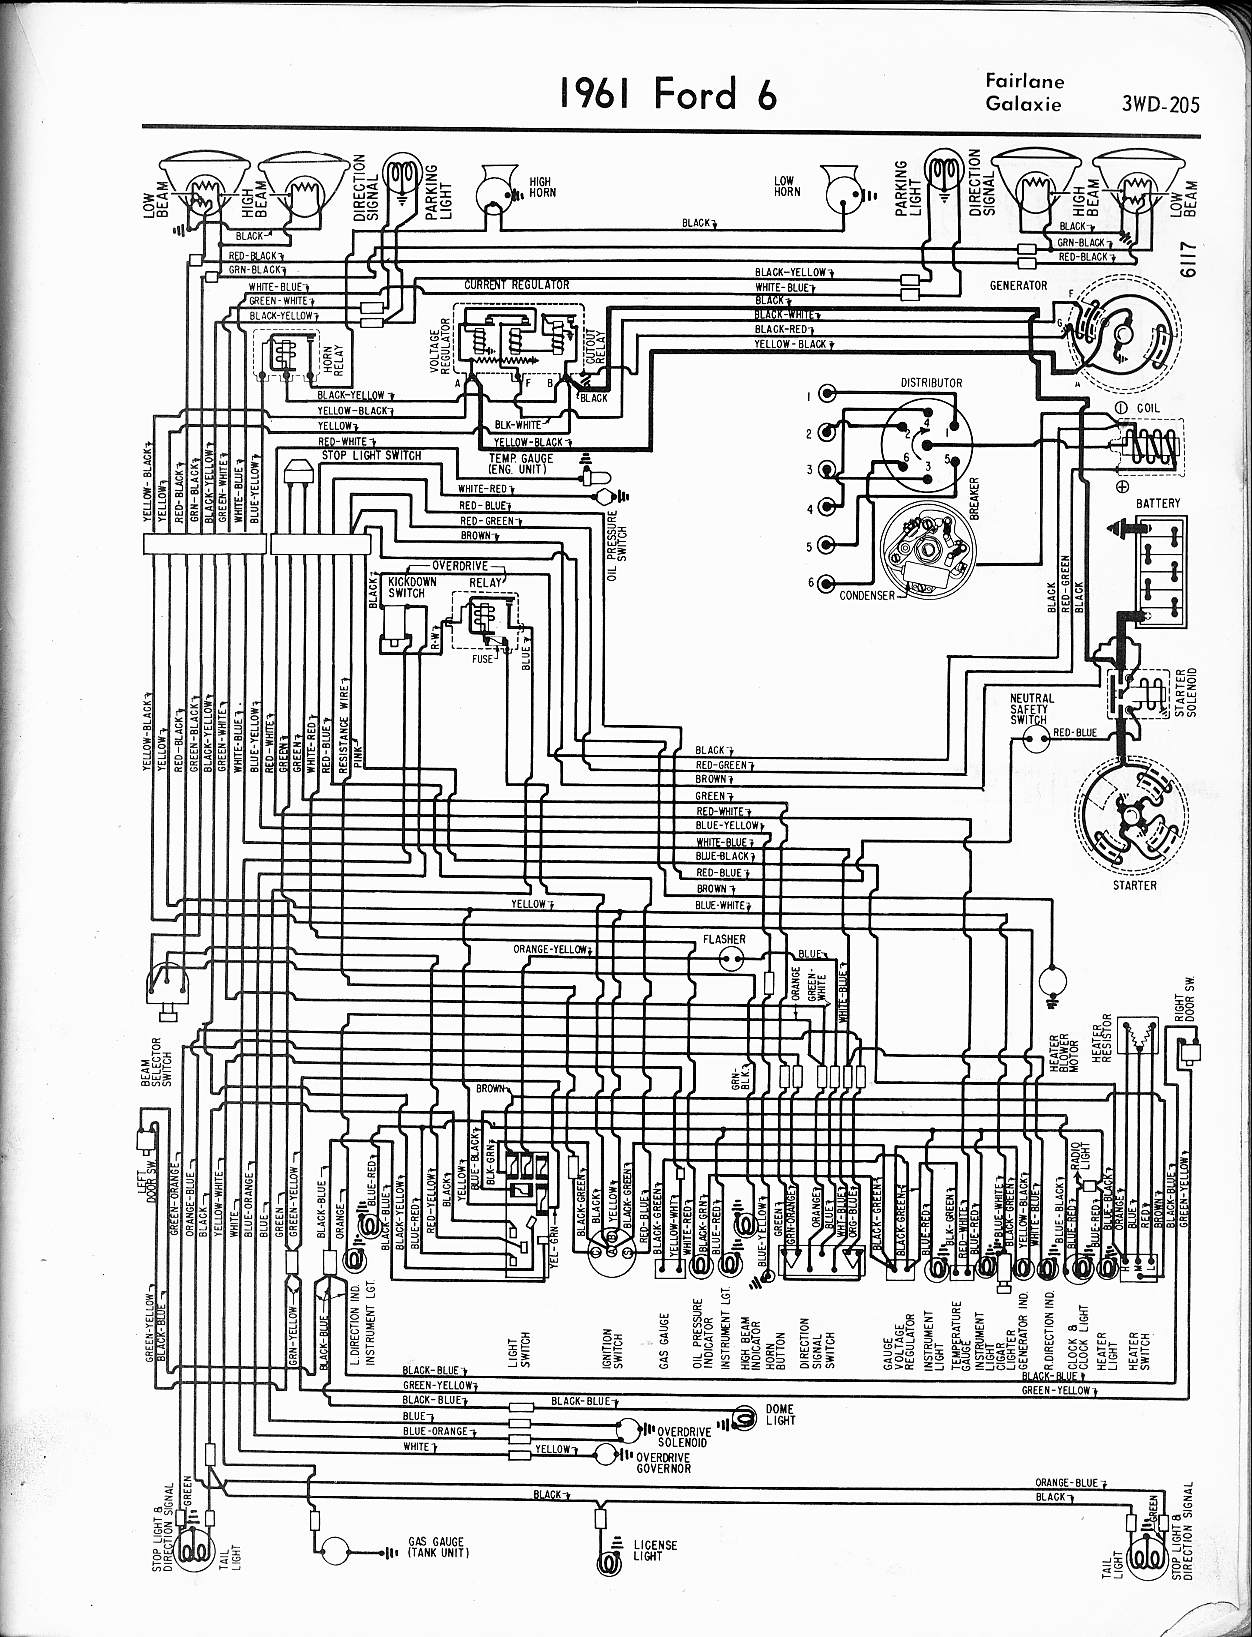 MWire5765 205 wiring diagram model a ford the wiring diagram readingrat net Ford E 350 Wiring Diagrams at creativeand.co